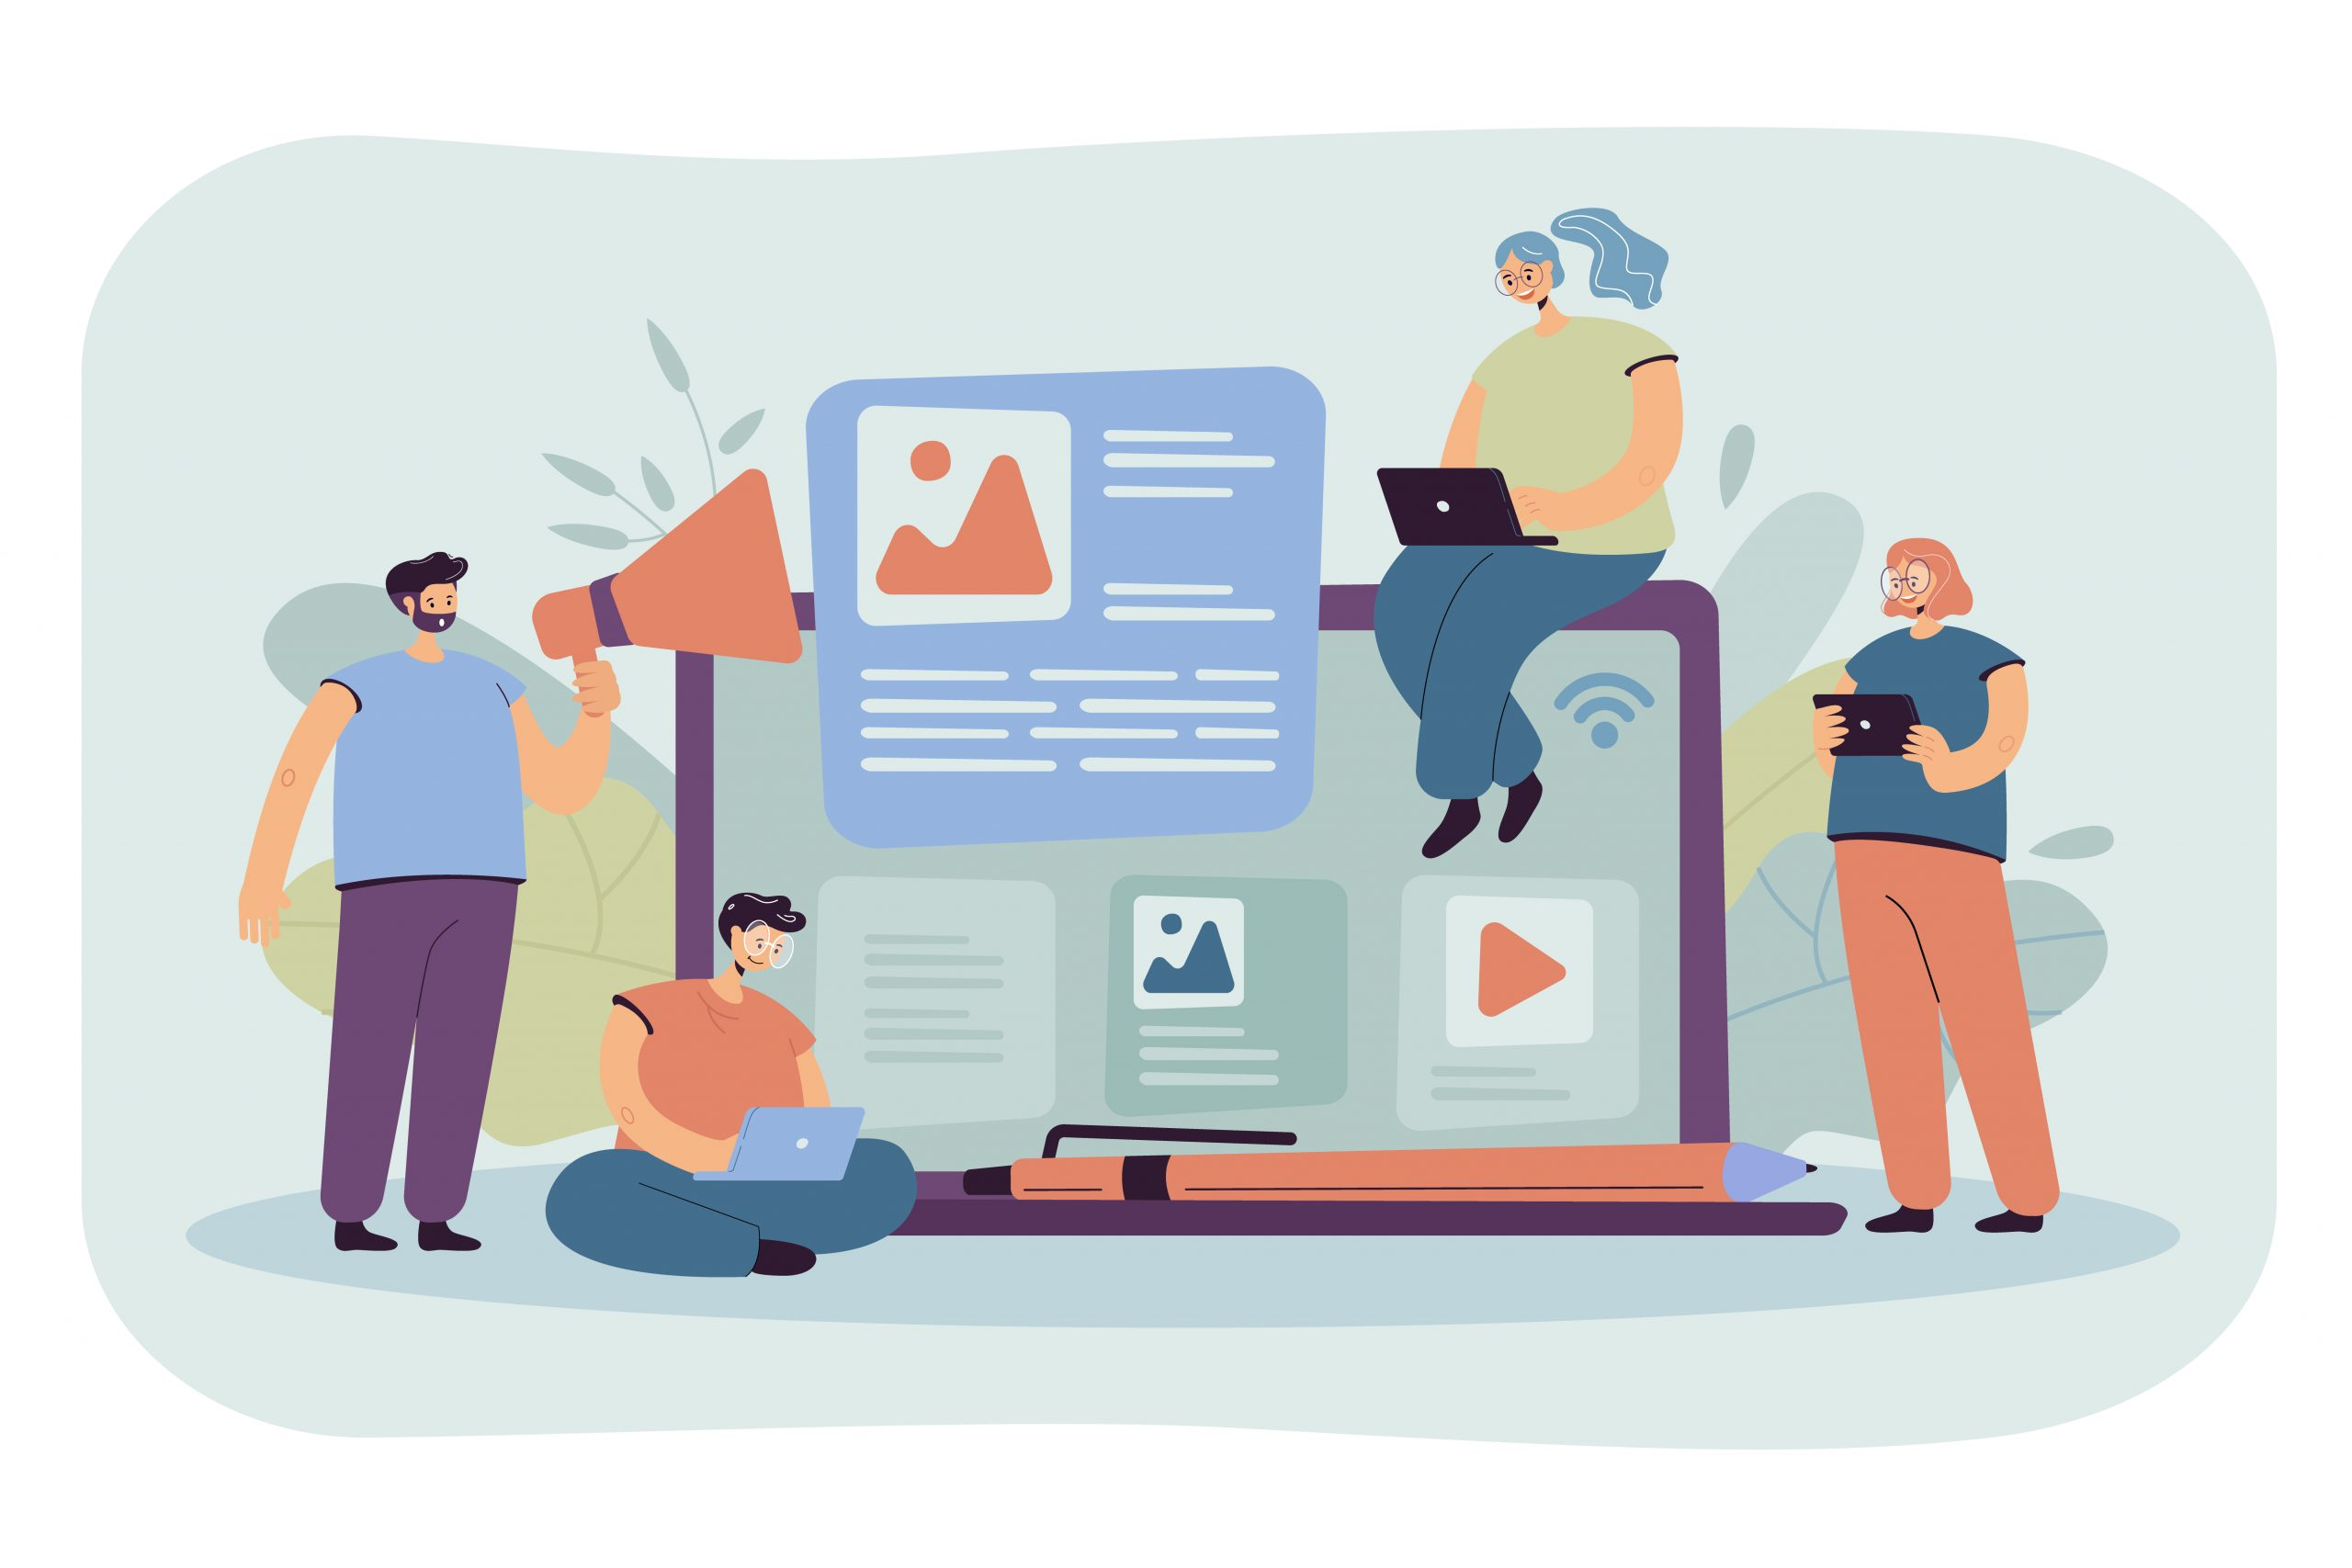 Content Marketing in 2021: What Will Work and What Won't?